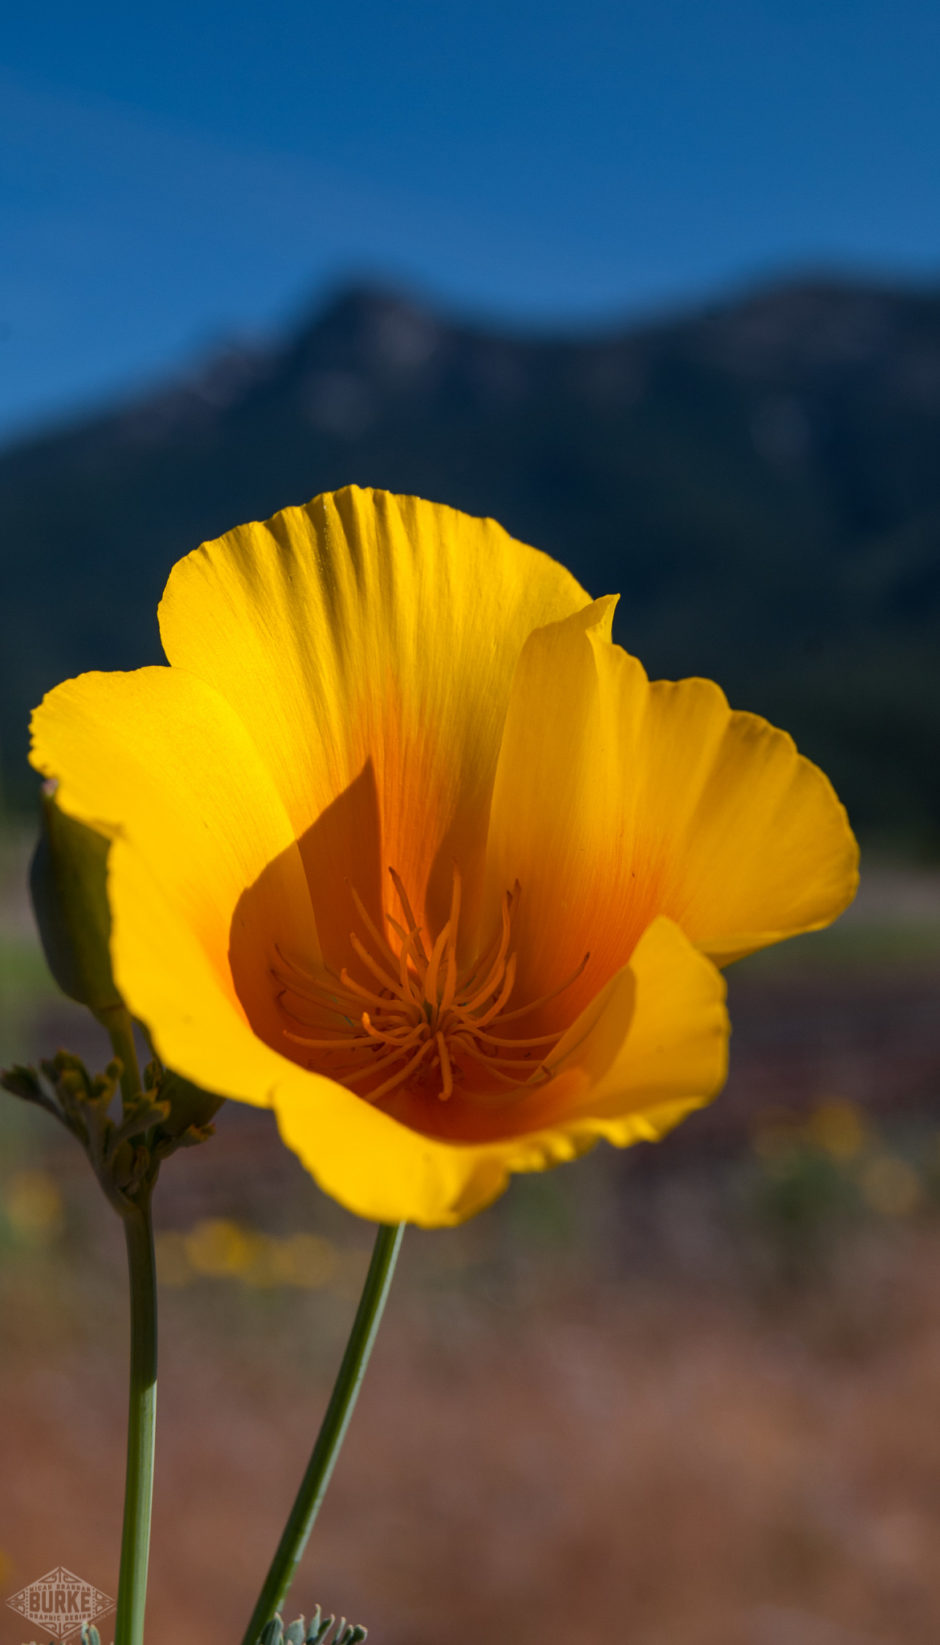 wpid-california-poppy.jpg